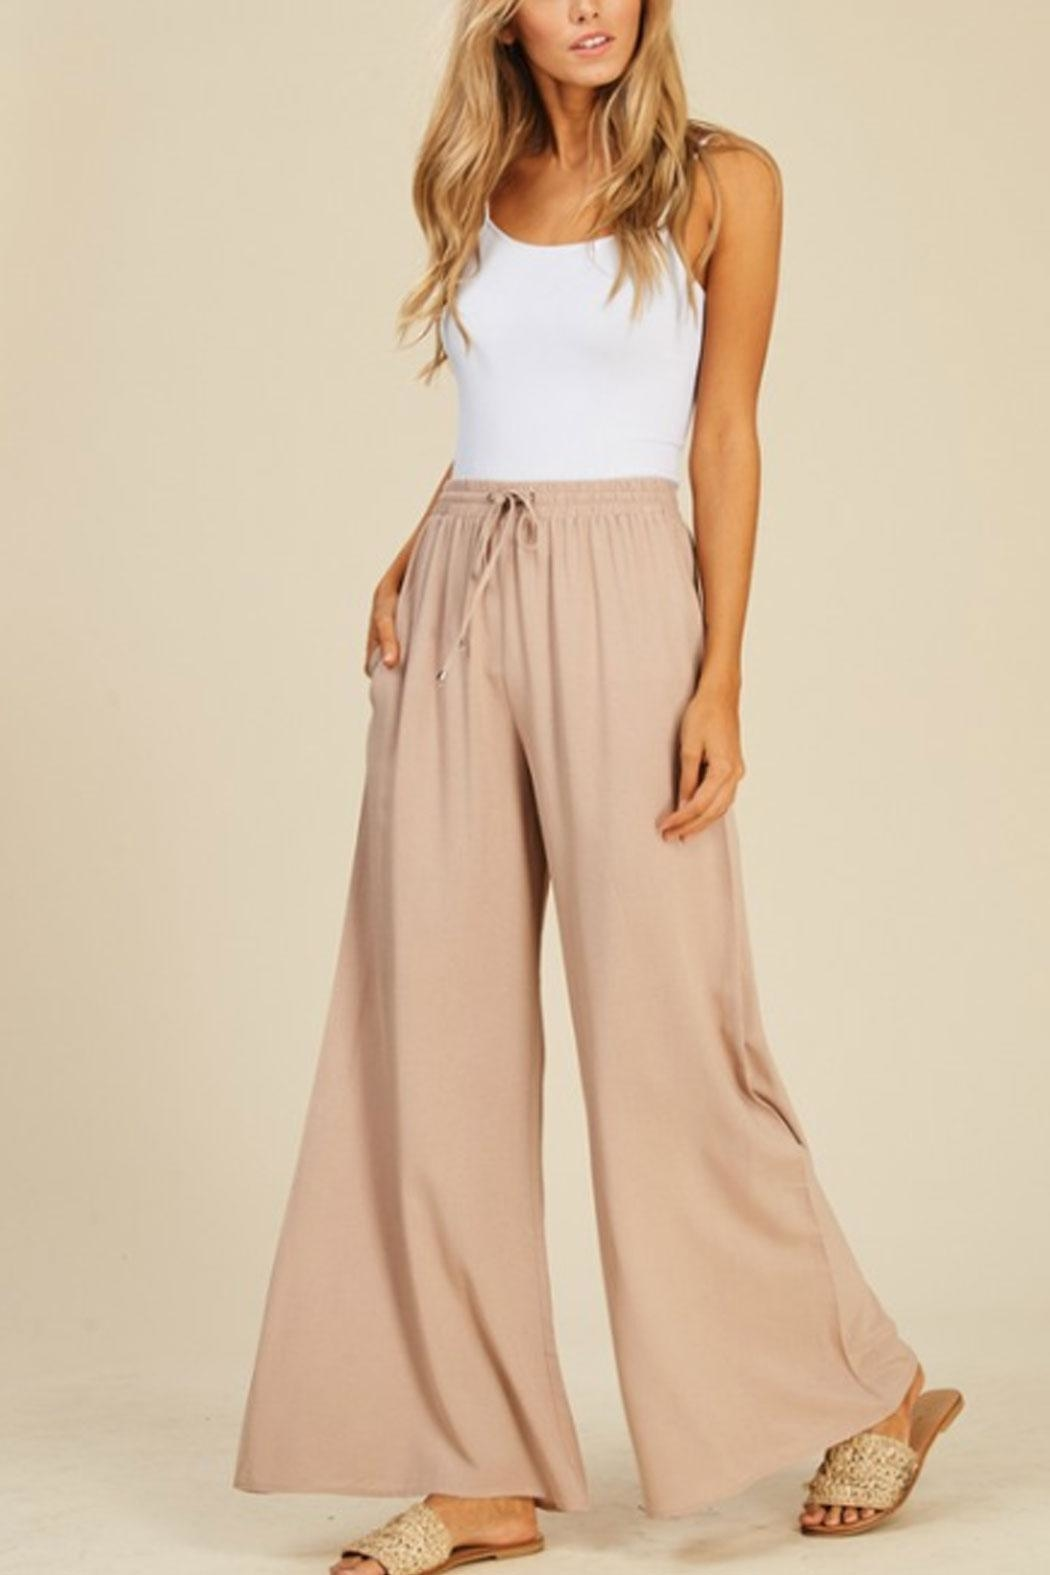 annabelle Flowy Flare Pants - Main Image